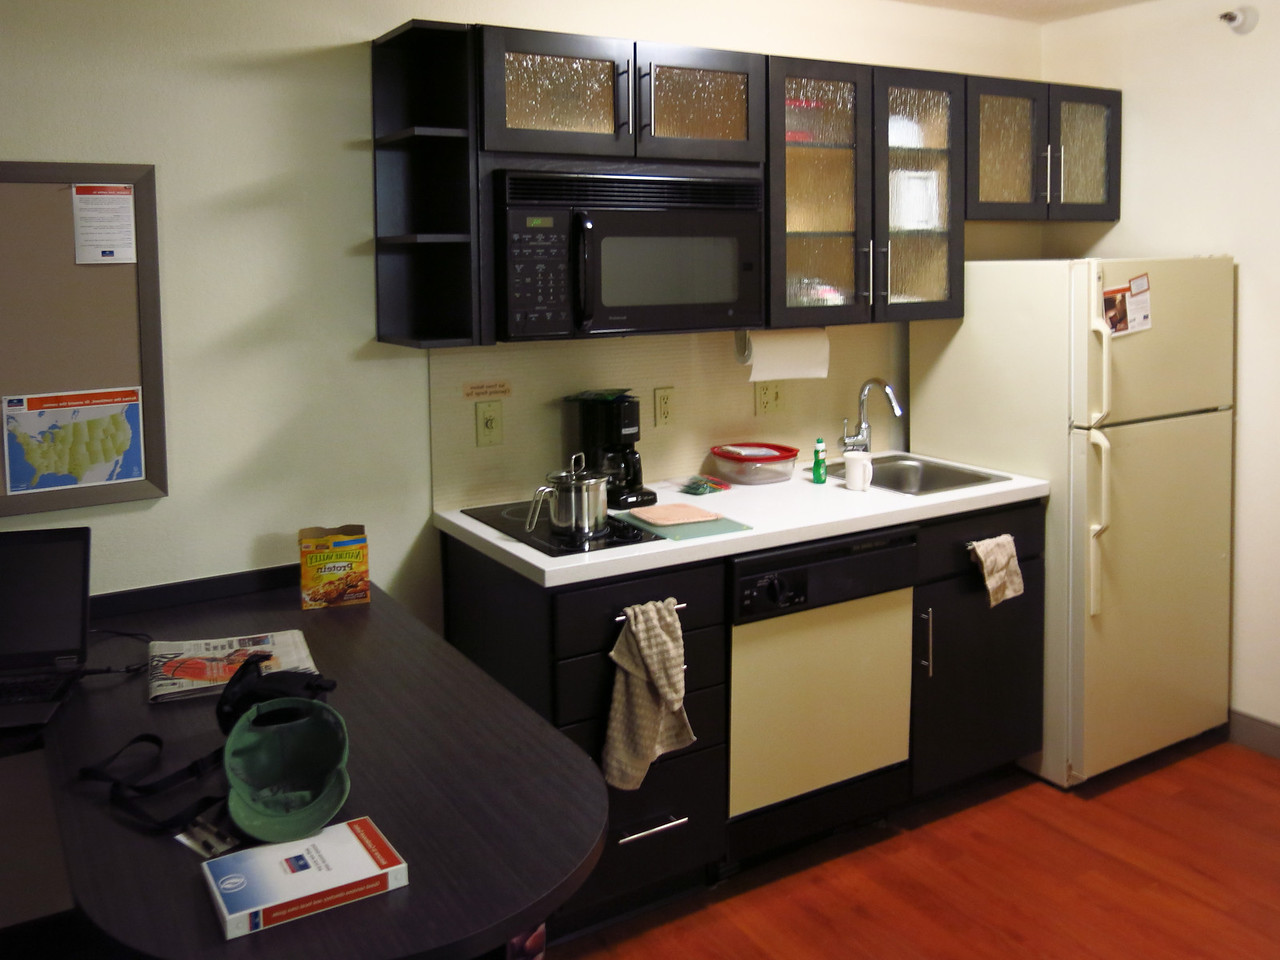 Nathan has a one room studio apartment with kitchenette at the Candlwood.